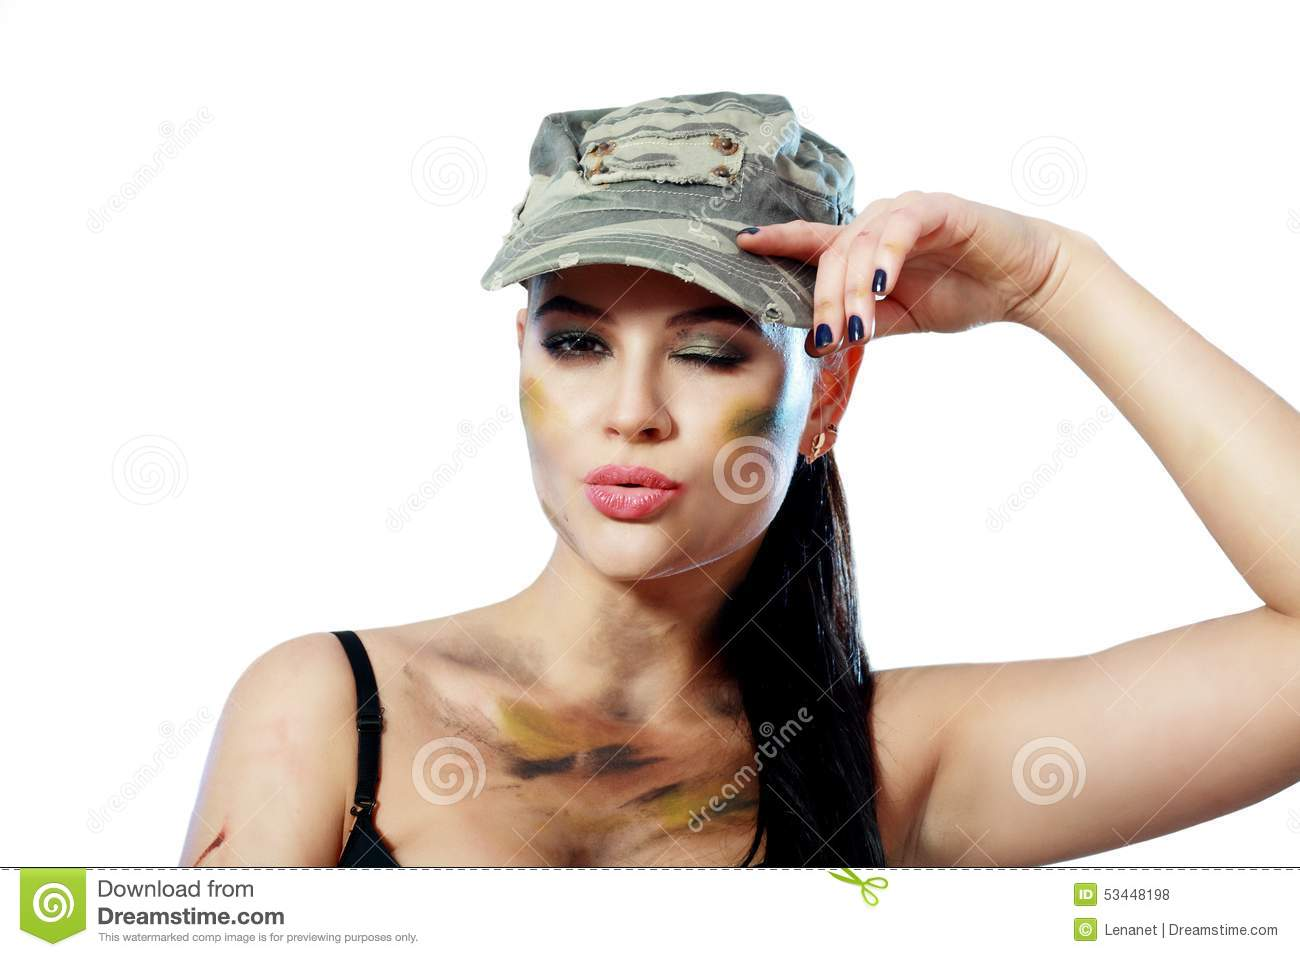 Woman In Military Stock Photo Image Of Security, Khaki -7633